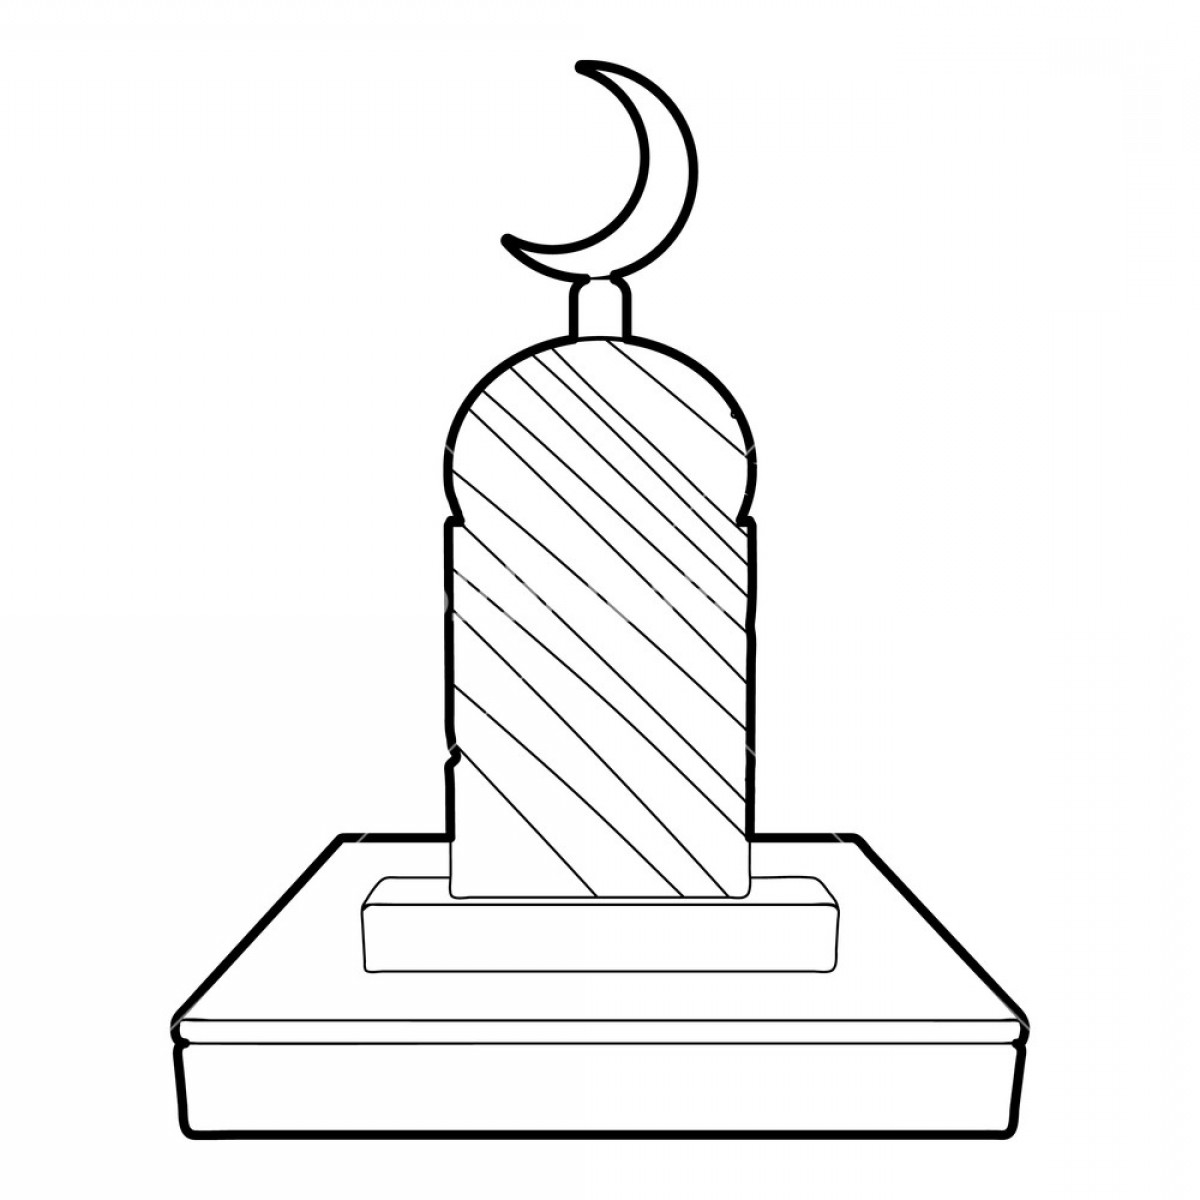 Gravestone Outline Vector: Muslim Grave Icon Outline Illustration Of Muslim Grave Vector Icon For Web Rowymgqjhzcglv